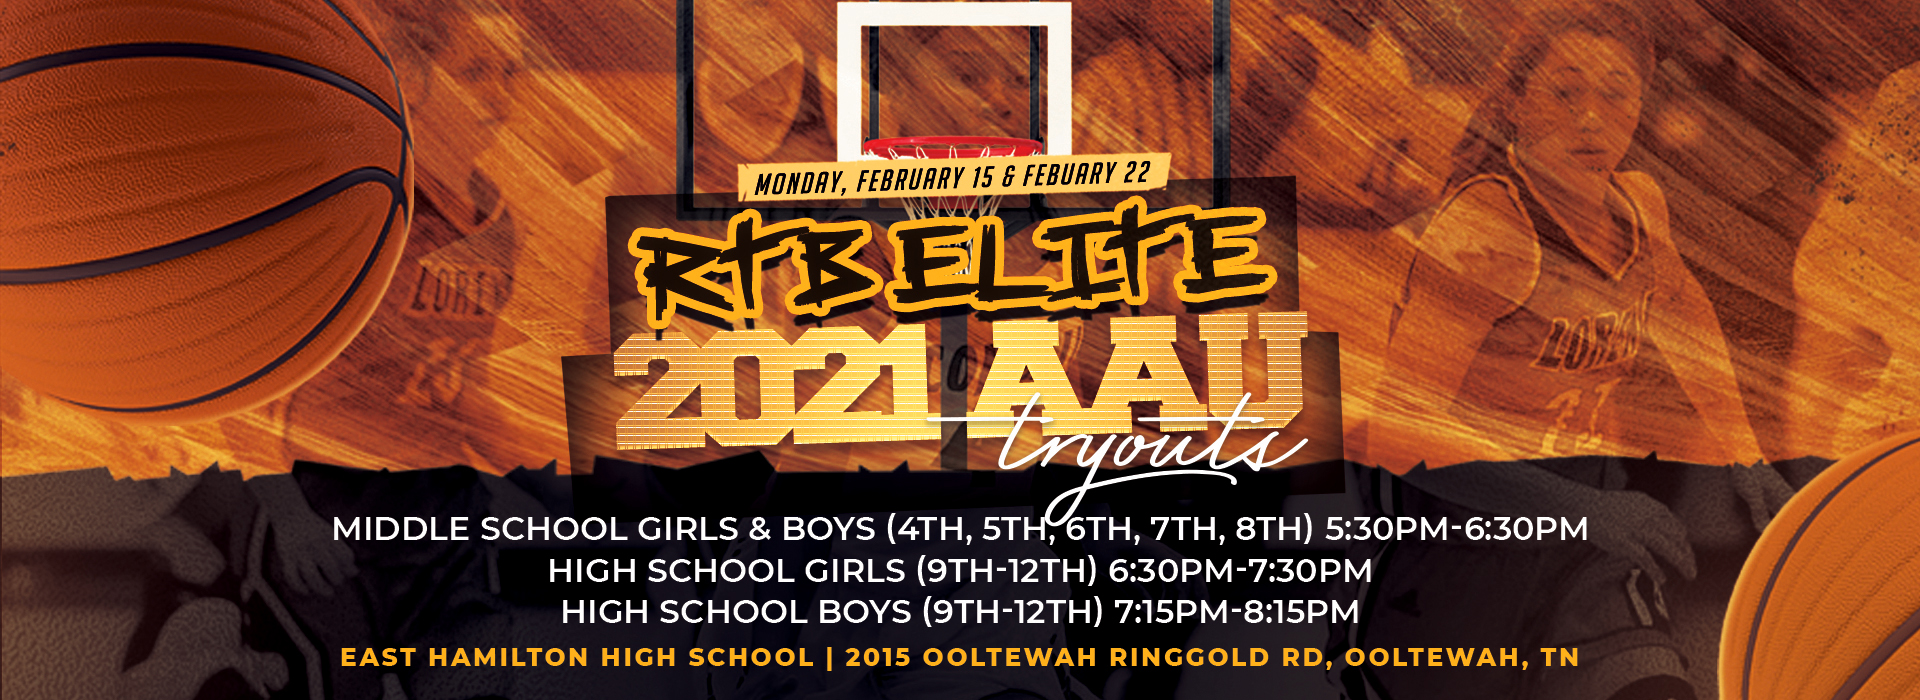 RTB_AAU_Tryouts_2021_Banner